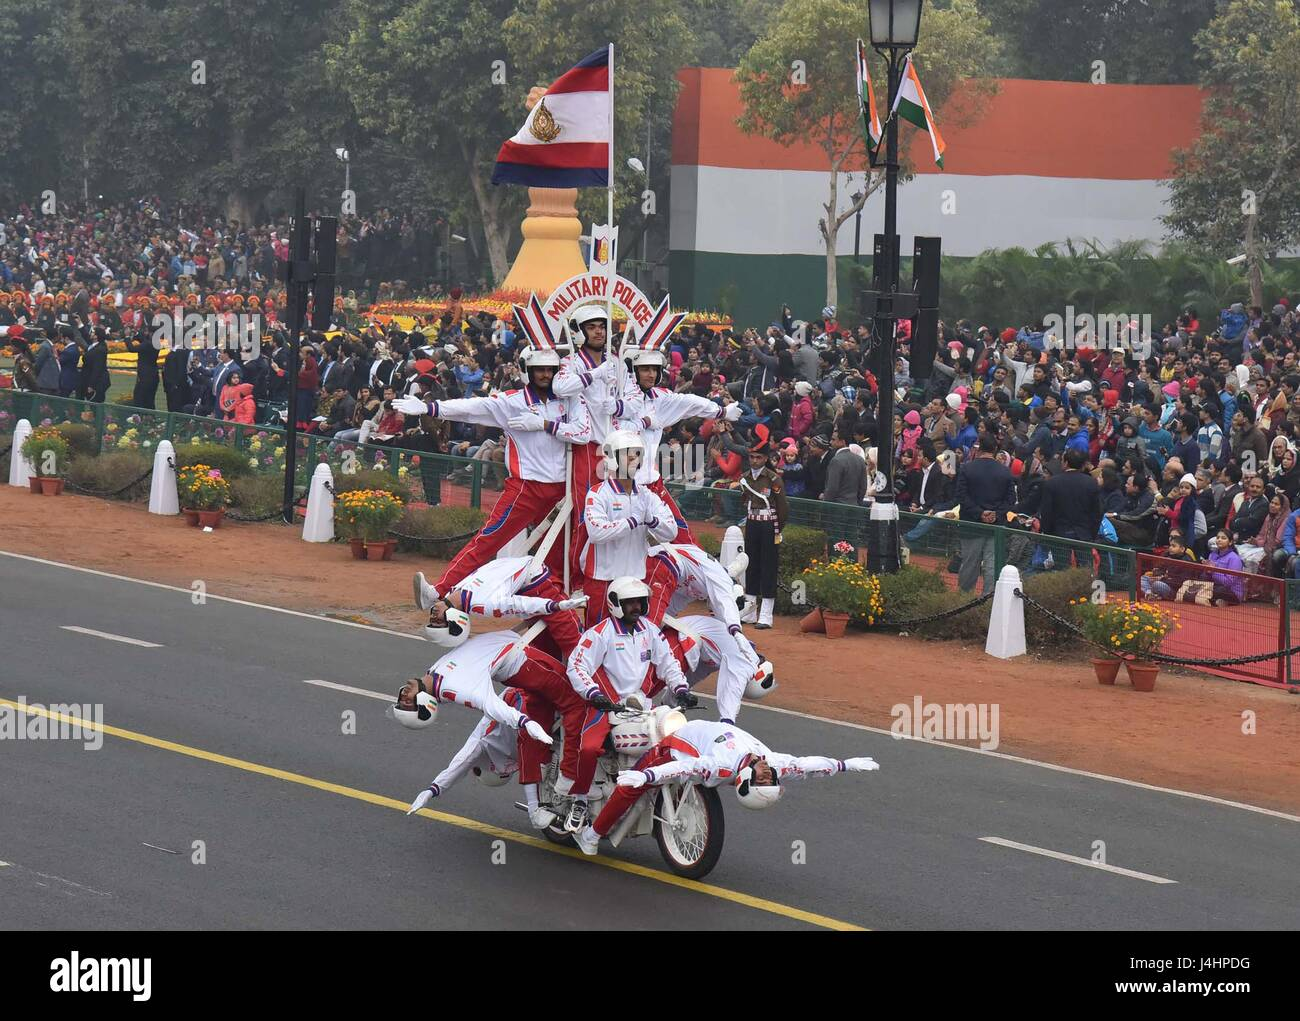 The Indian Army Corps of Signals contingent perform daredevil stunts on motorbikes down the Rajpath ceremonial boulevard - Stock Image